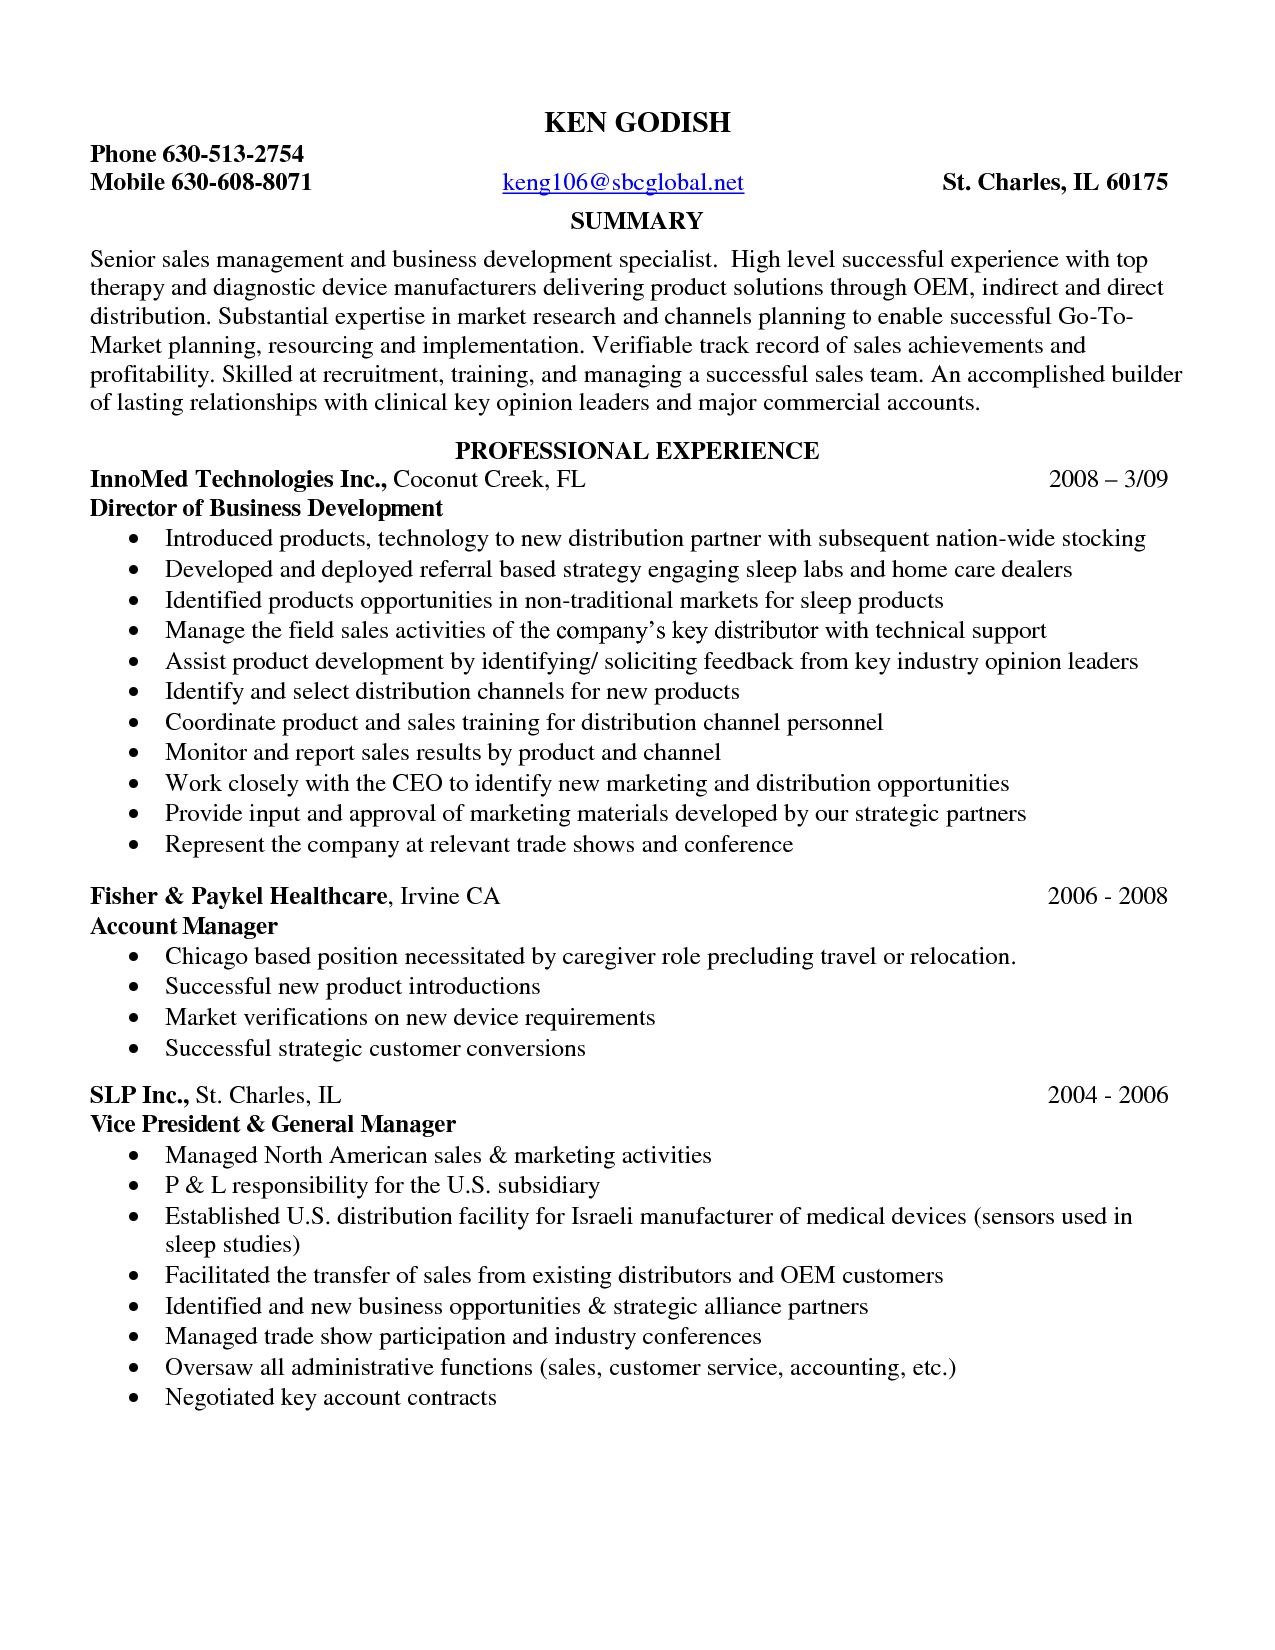 sample resume entry level pharmaceutical sales sample resume entry level pharmaceutical sales entry level pharmaceutical sales cover letter sample